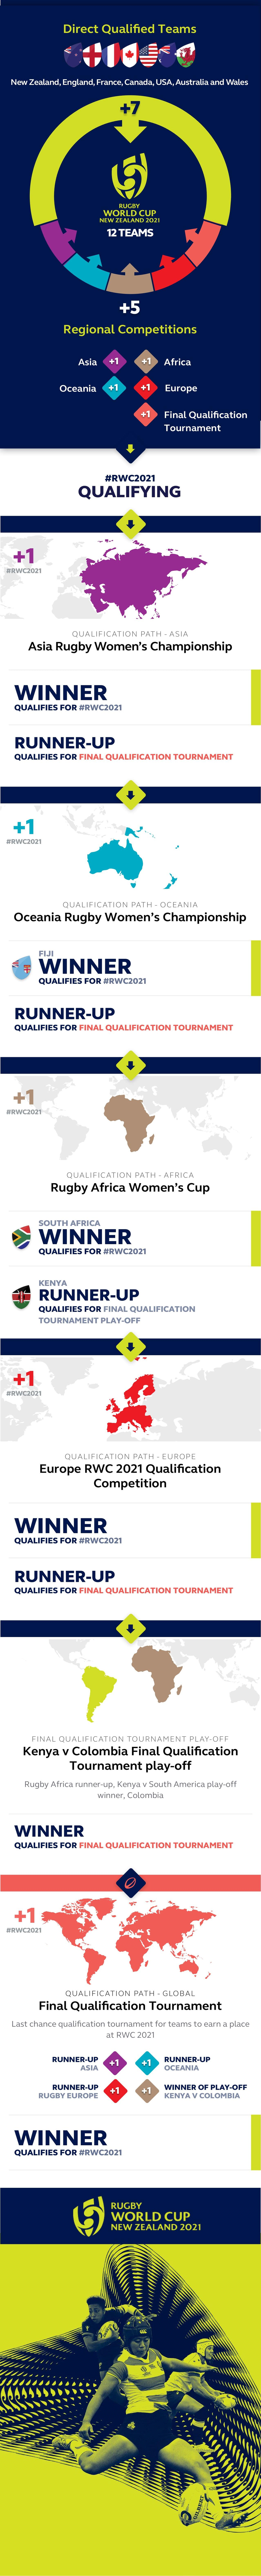 http://www.worldrugby.org/photos/572277